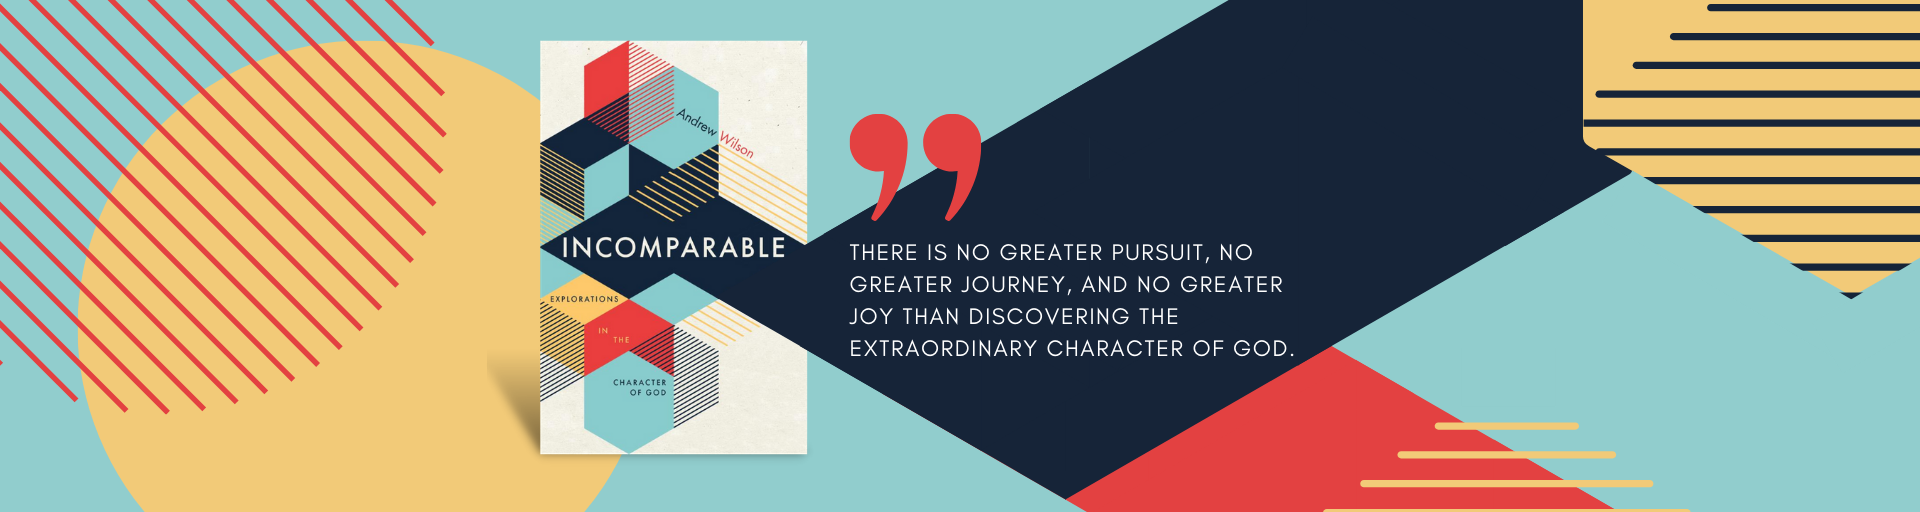 Incomparable - Explorations in the Character of God